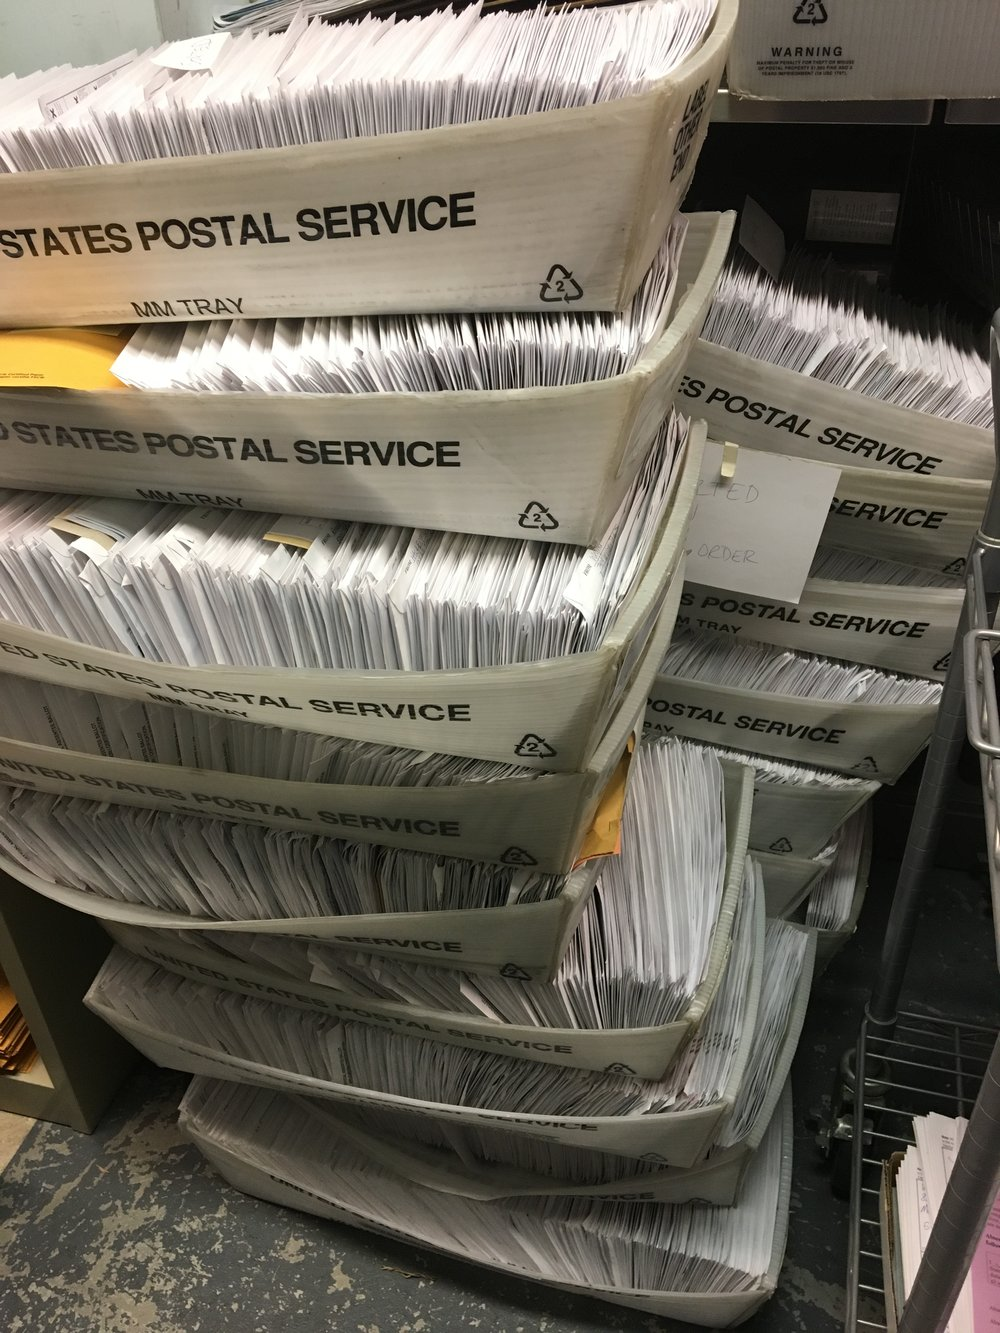 Trays of in-person absentee ballots, sorted by ward, in the vault at the City Clerk's office. (Photo courtesy of Maribeth Witzel-Behl.)